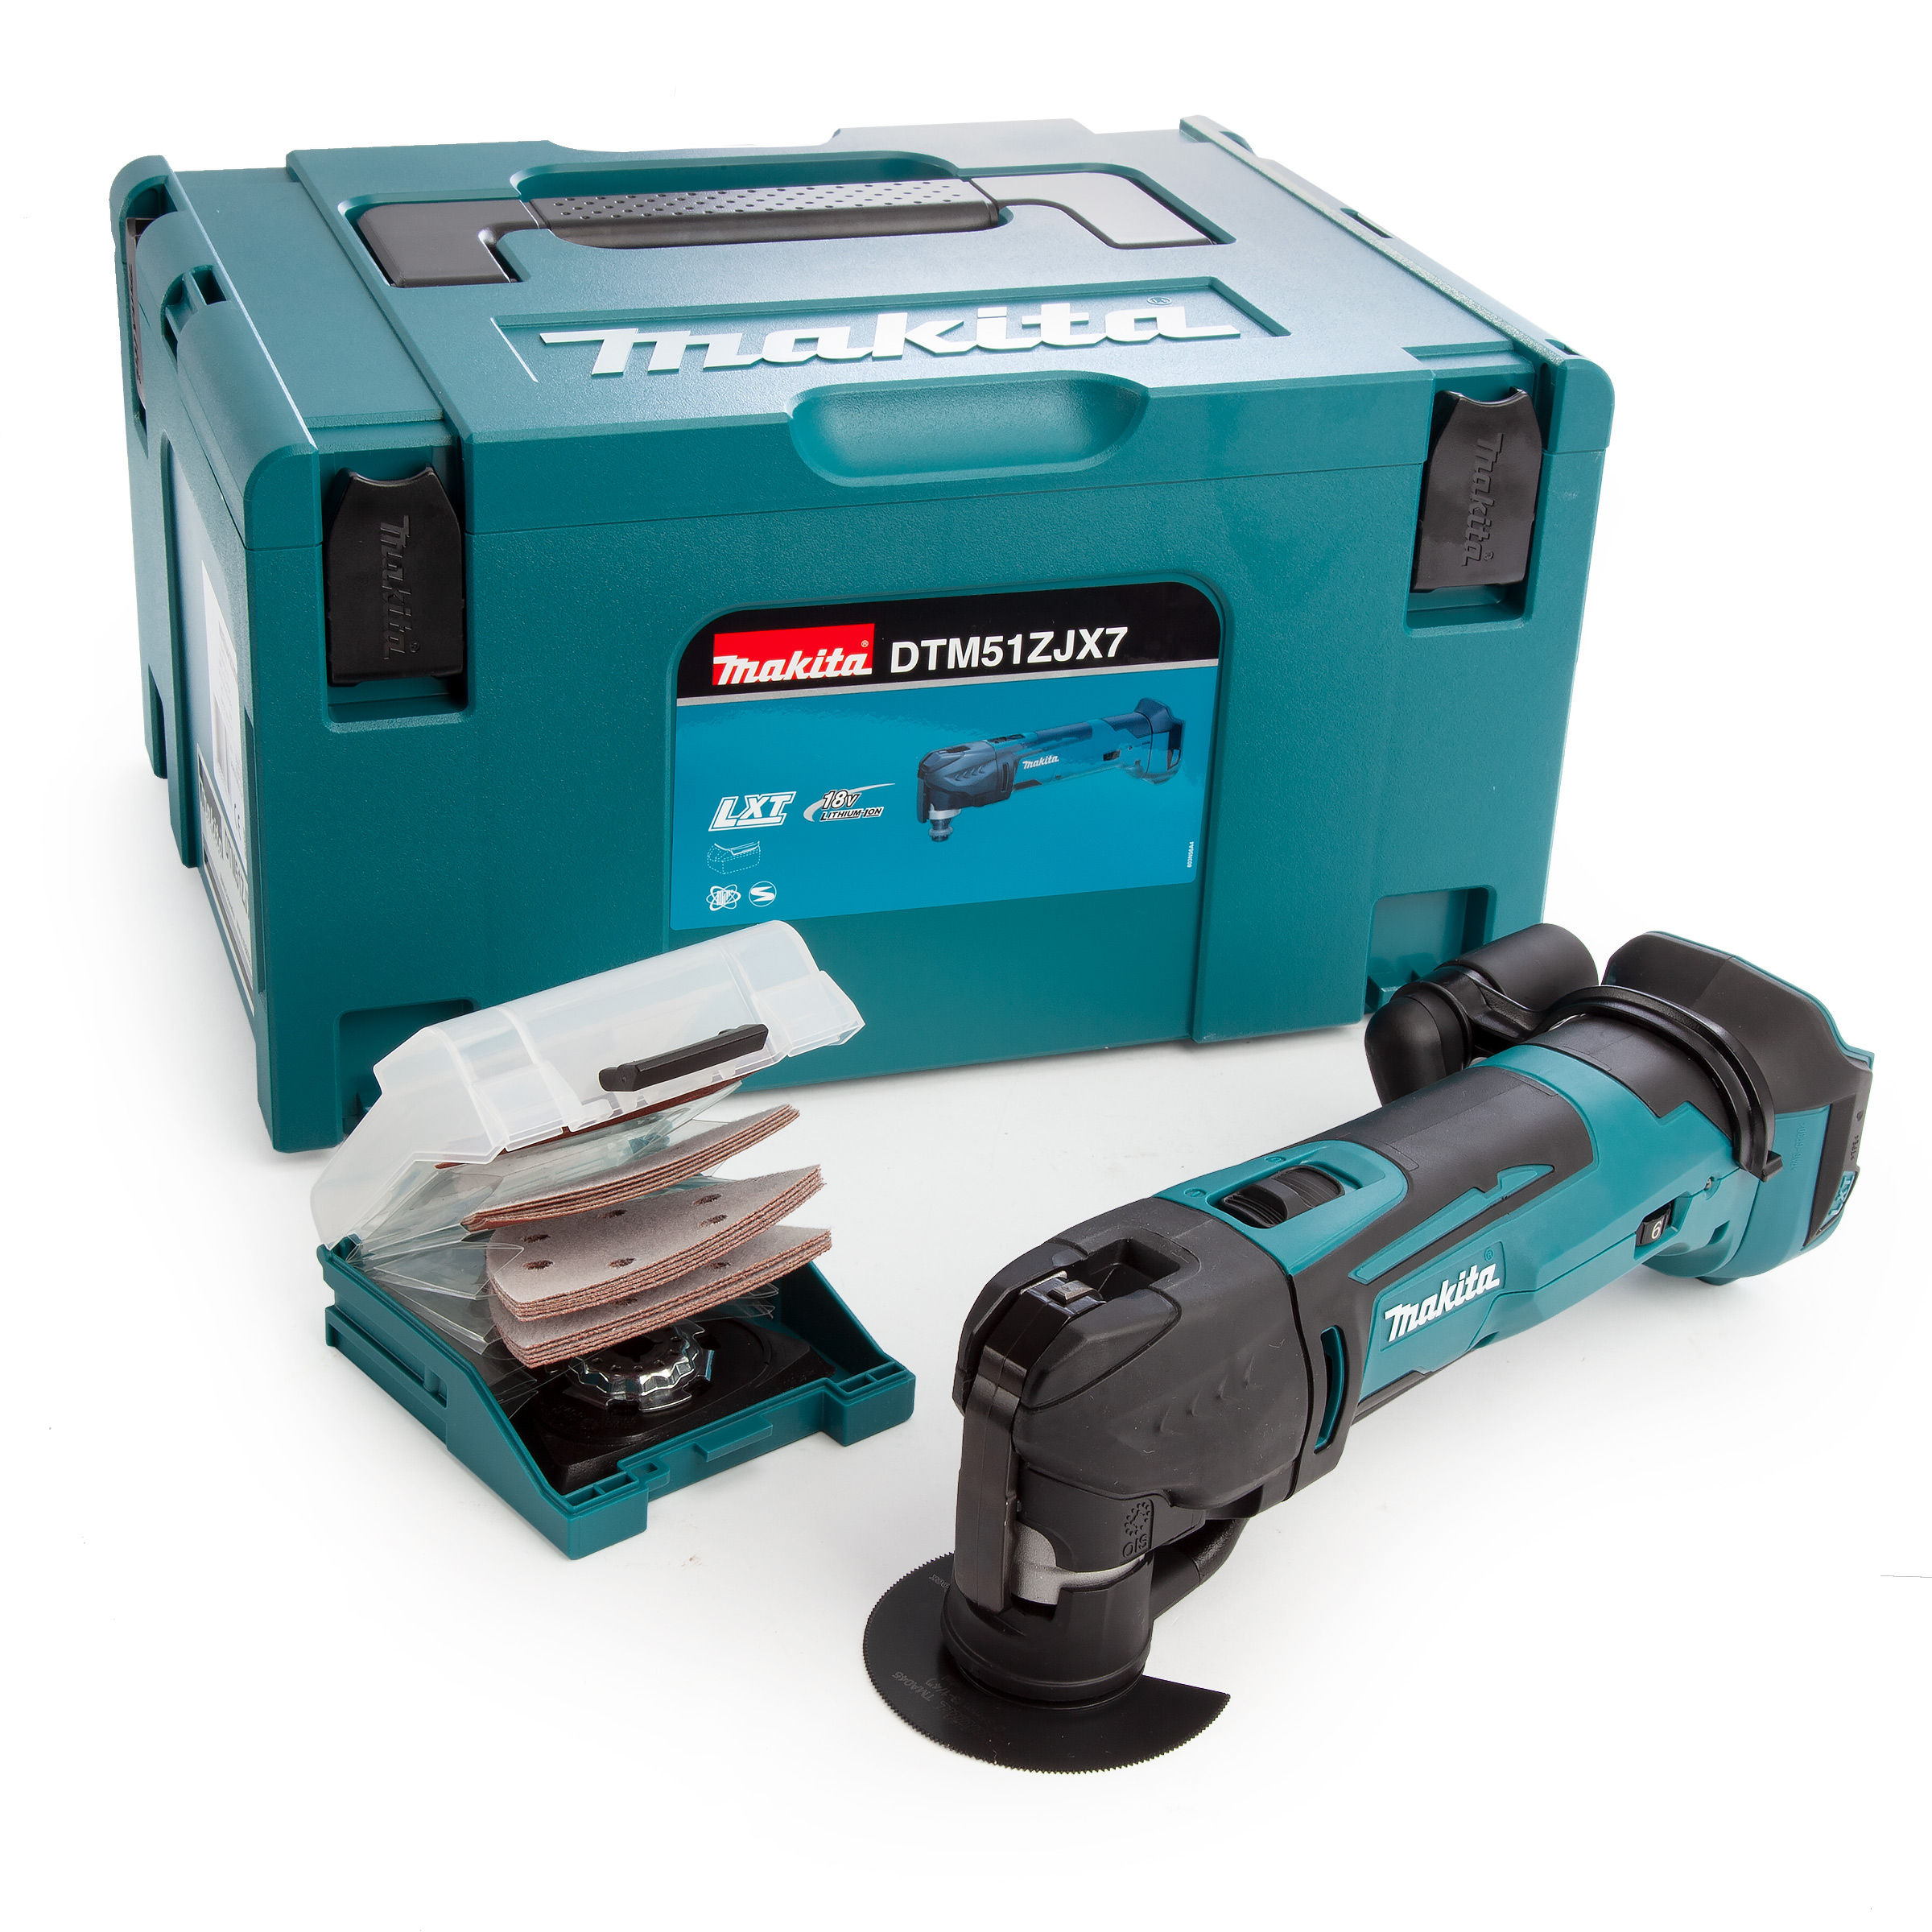 Makita DTM51ZJX7 Multi-tool Cordless 18V with Accessories in Makpac Case  (Body Only)